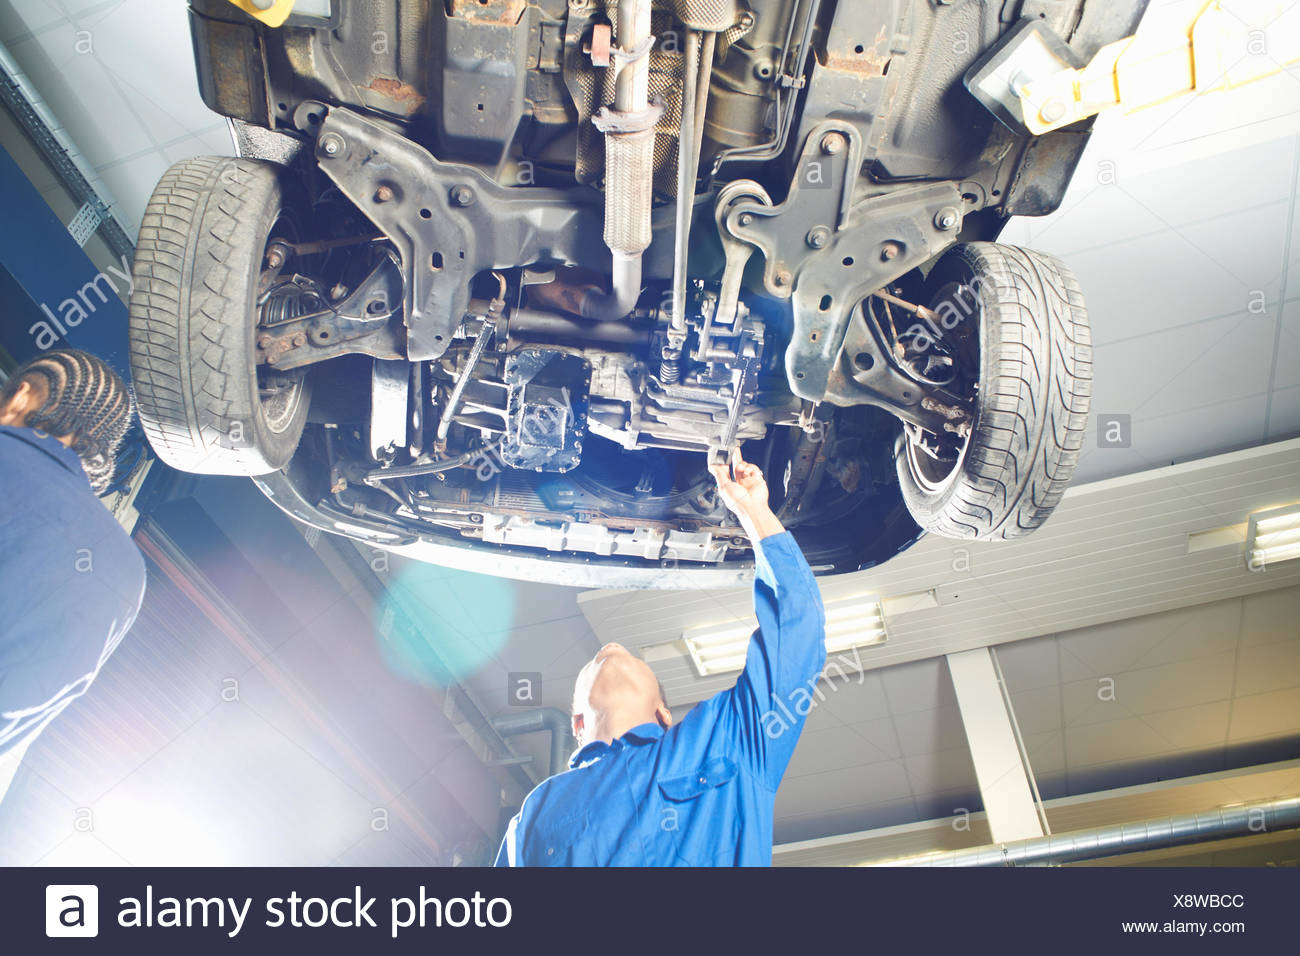 Male college student looking up at car dans l'atelier de garage Photo Stock